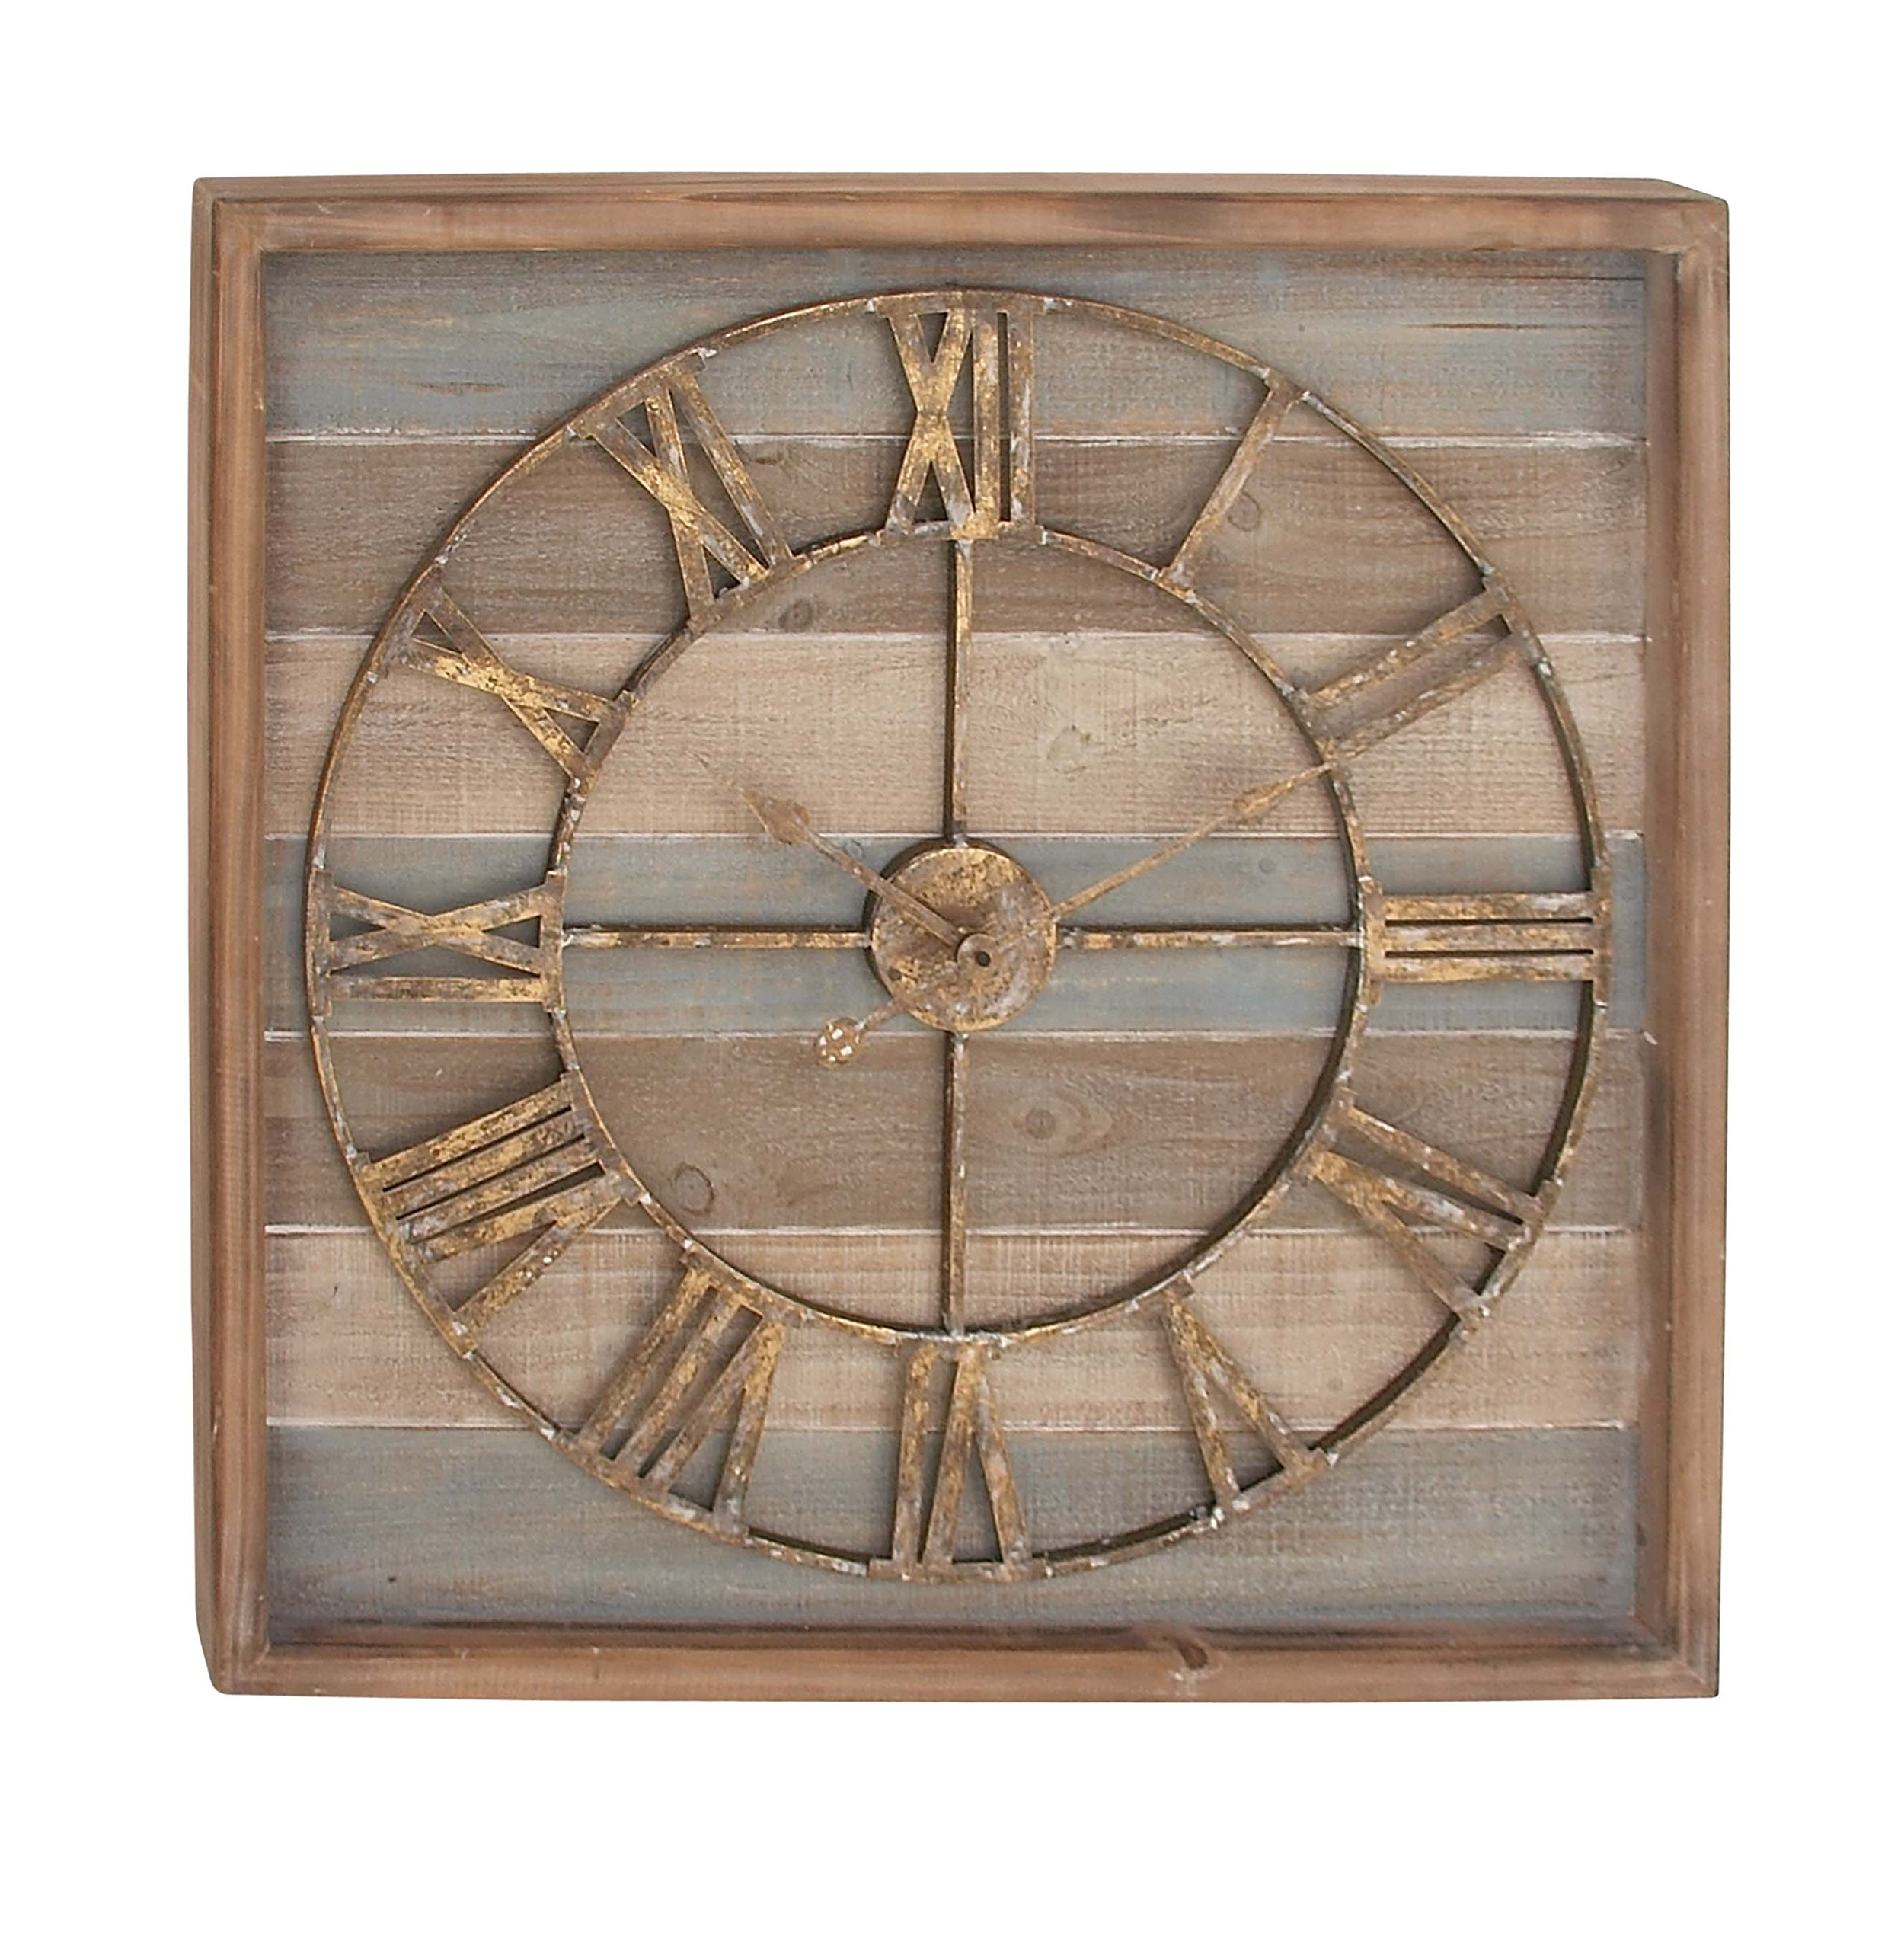 Deco 79 44444 Square Iron and Wood Wall Clock, Brown/White/Cyan by Deco 79 (Image #1)